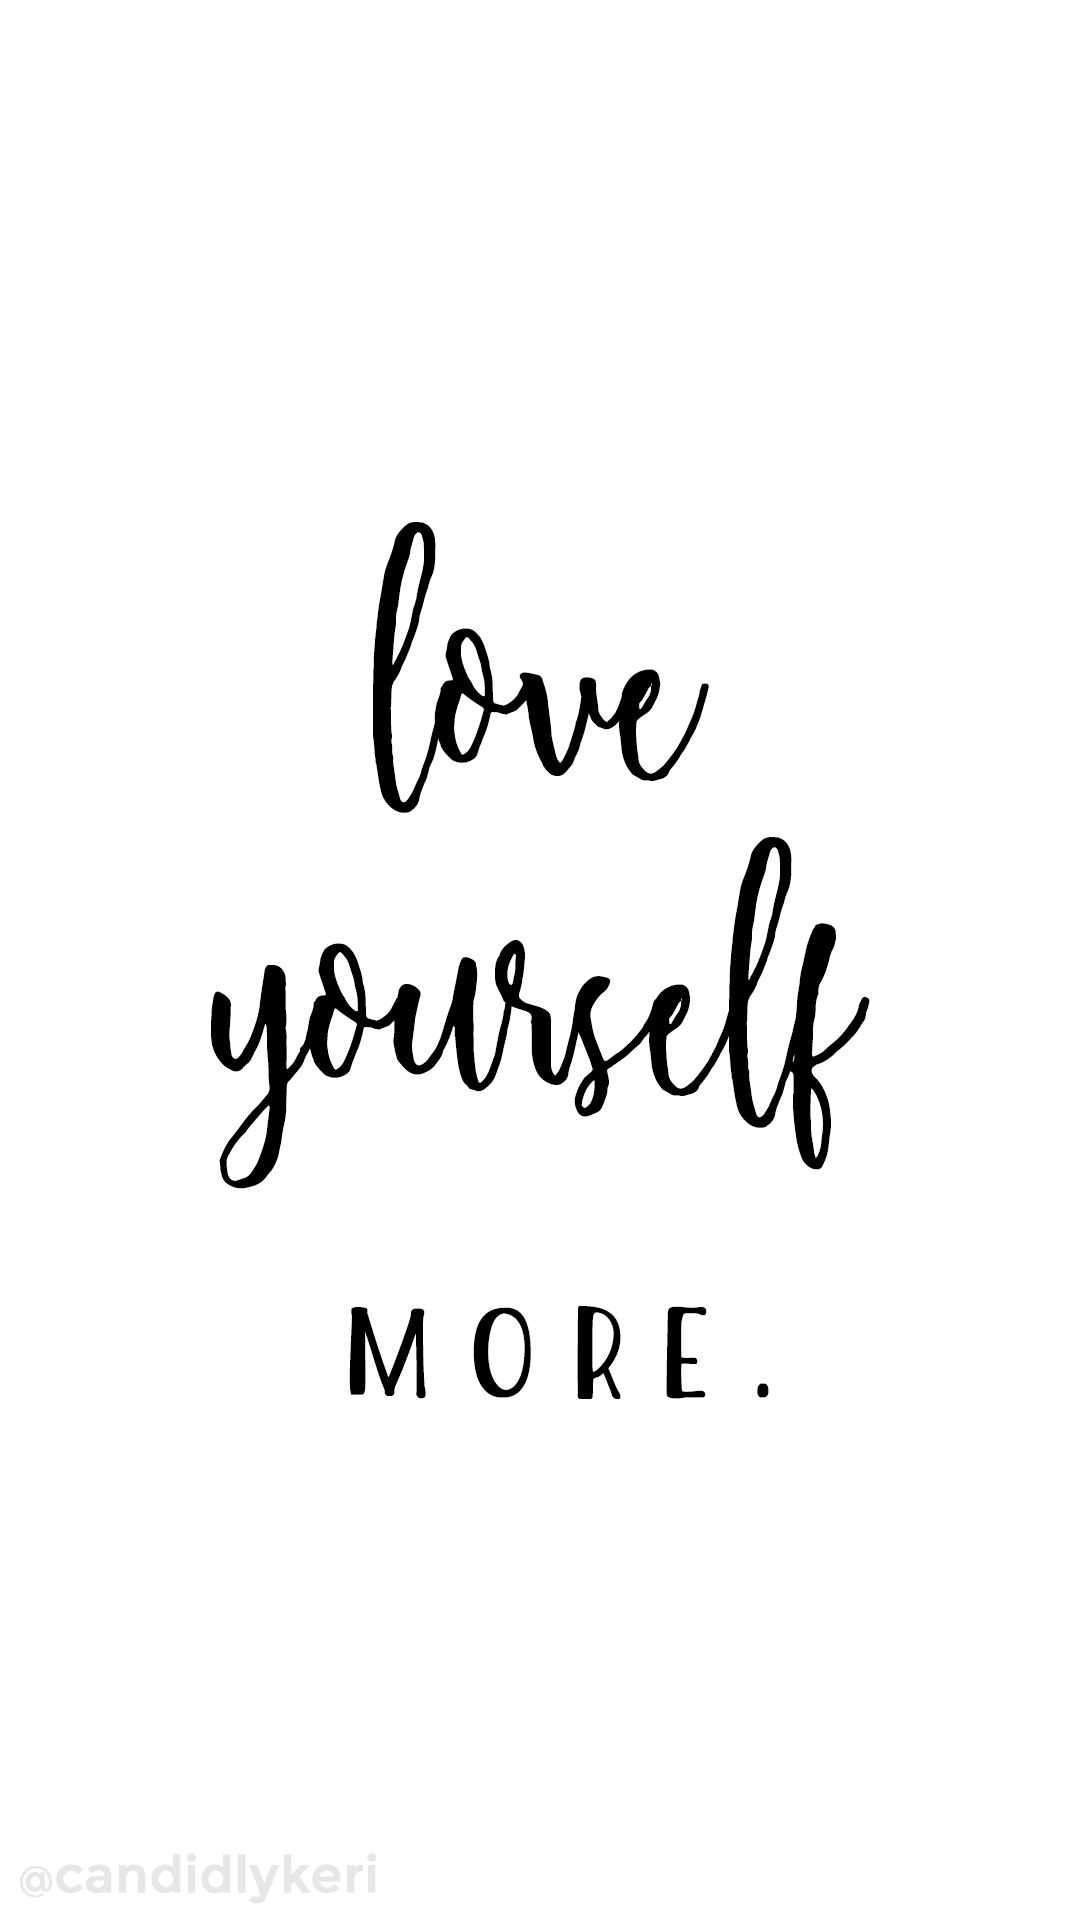 Love Yourself Quotes Wallpaper : Love Yourself More Quote inspirational self love wallpaper you can download for free on the blog ...